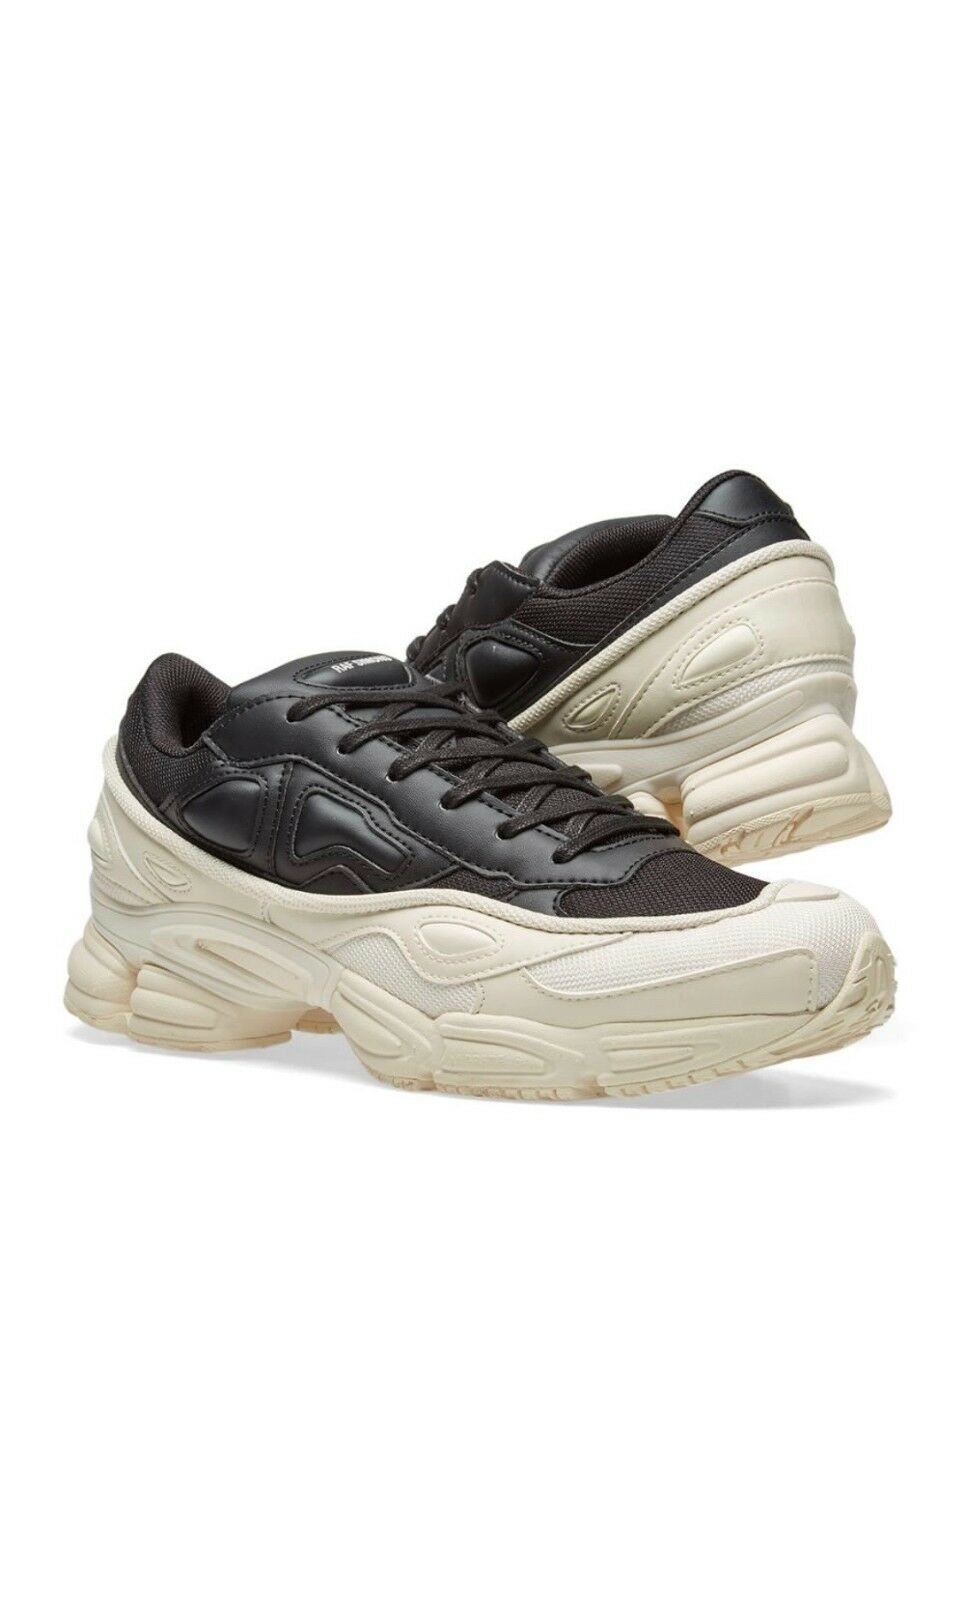 Adidas X Raf Simons RS Ozweego III White Black FW18 Available now